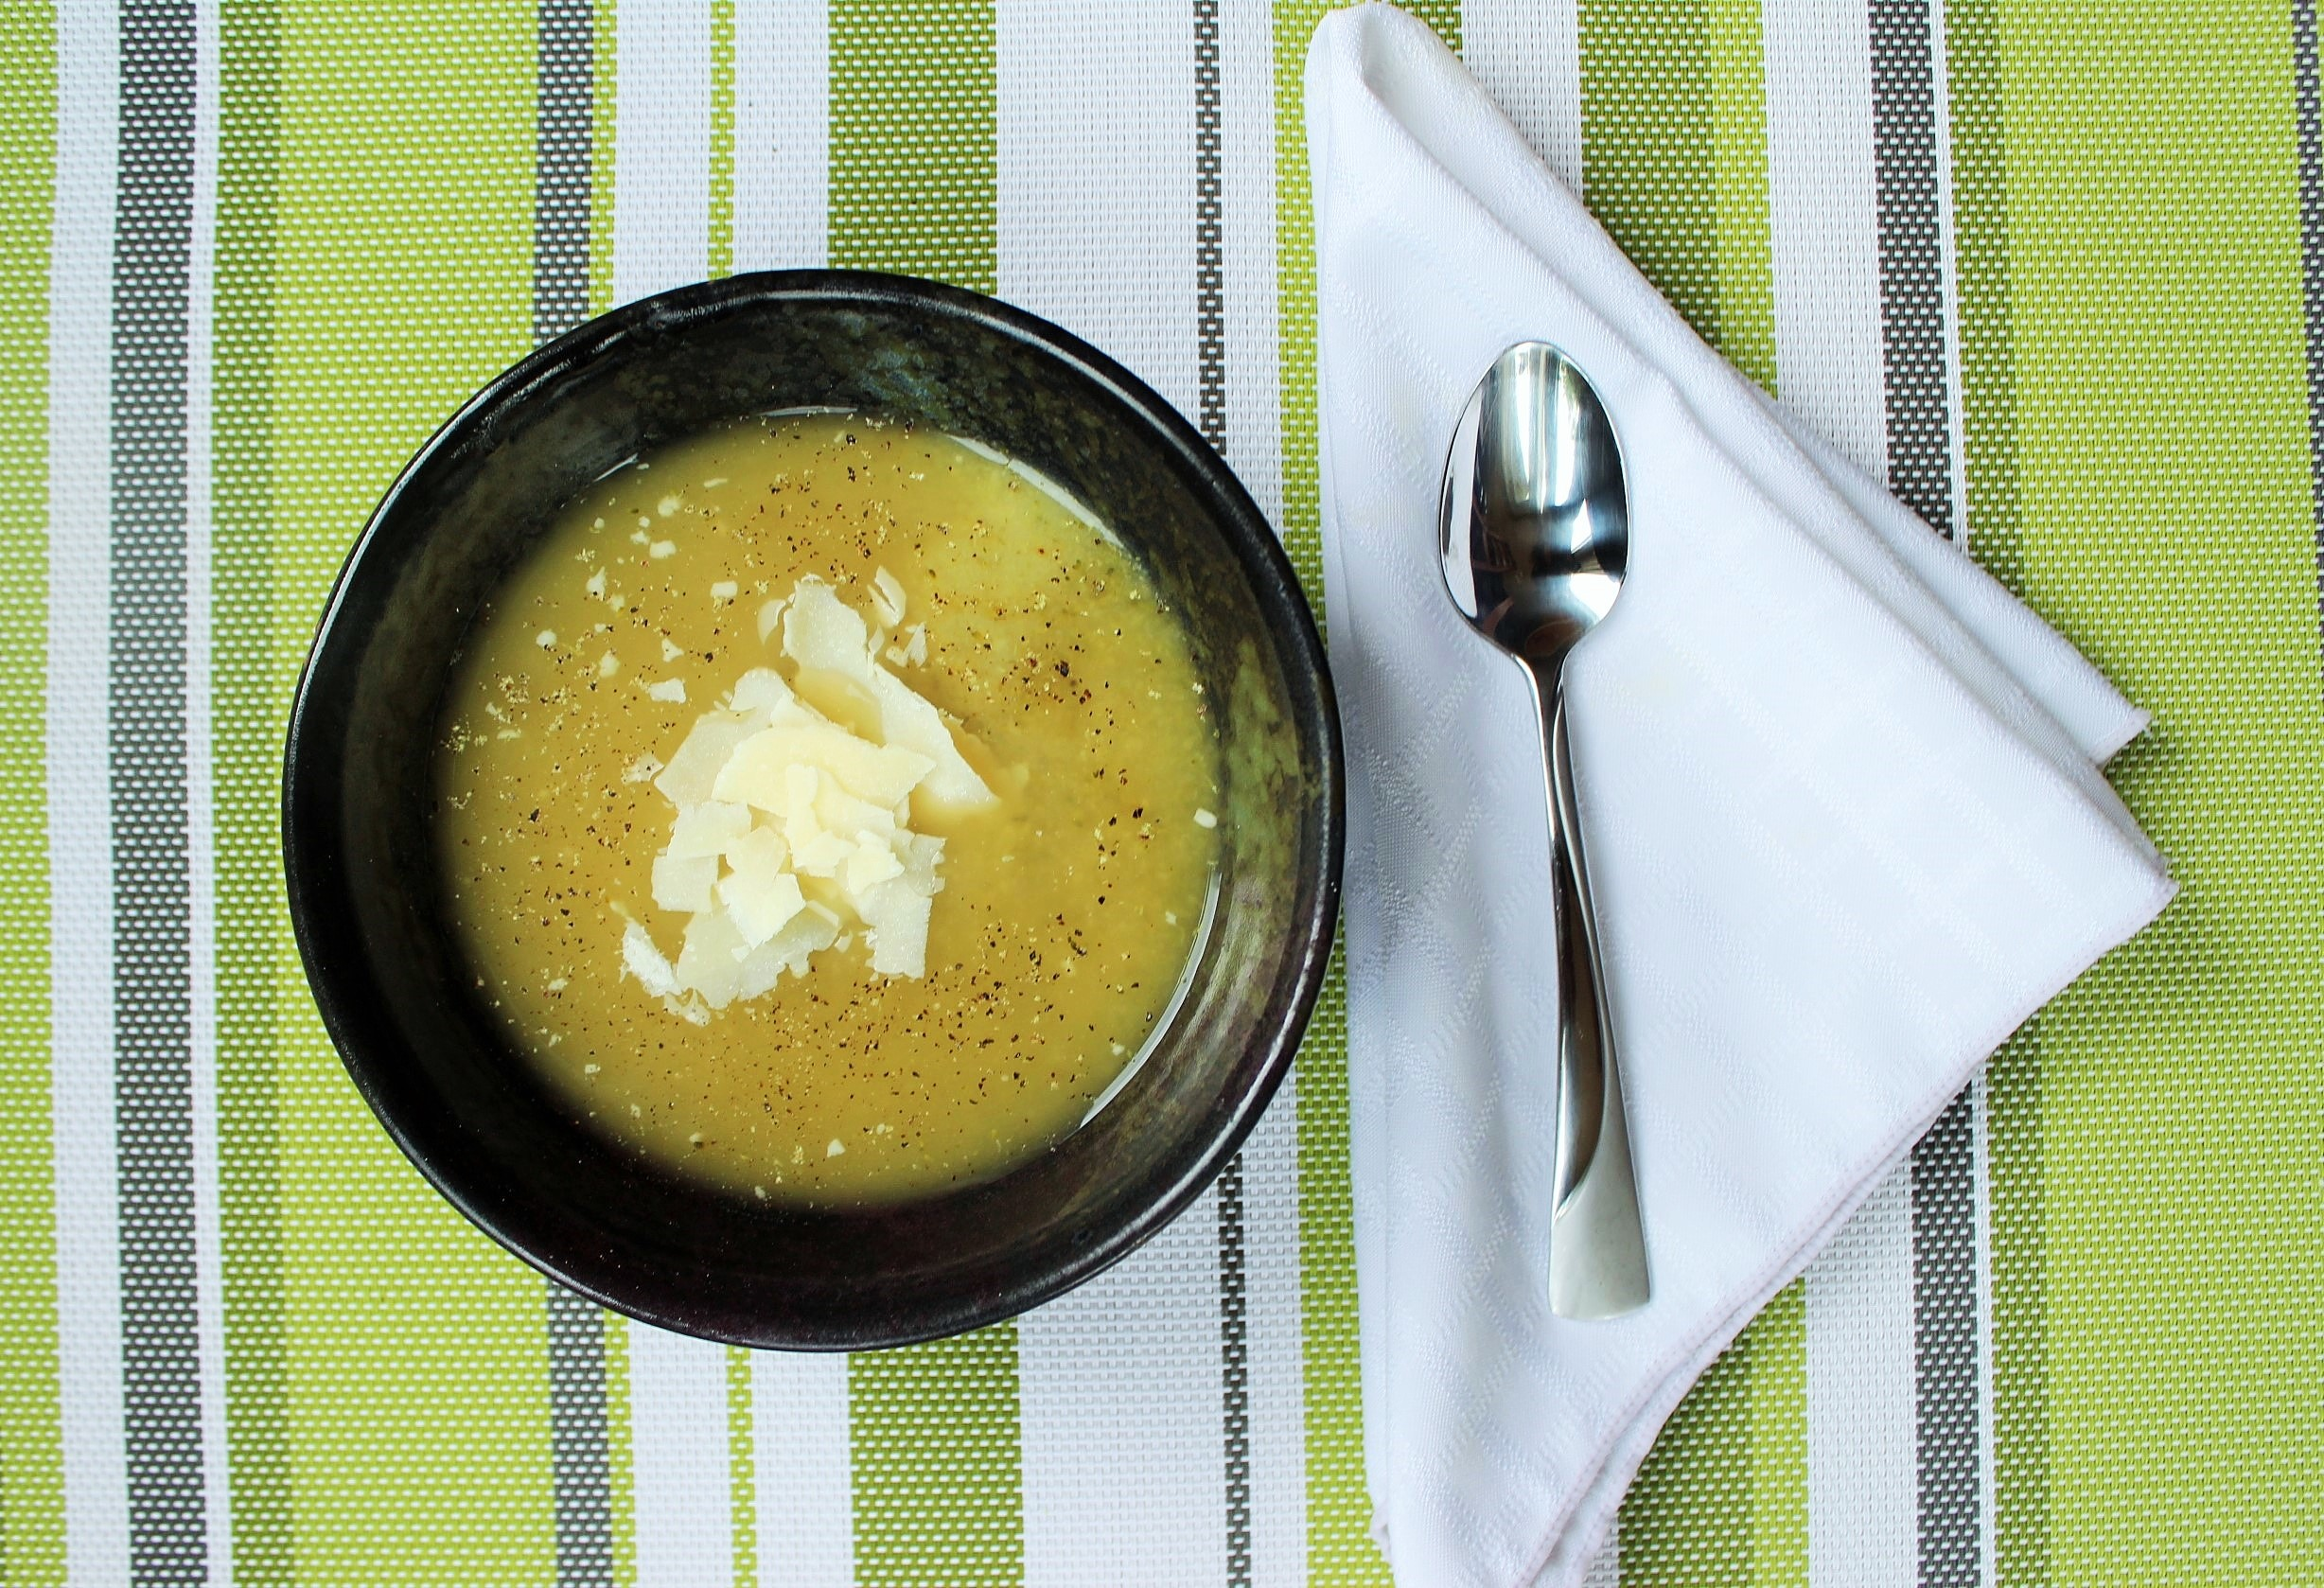 Broccoli Soup with Shaved Parmesan Cheese